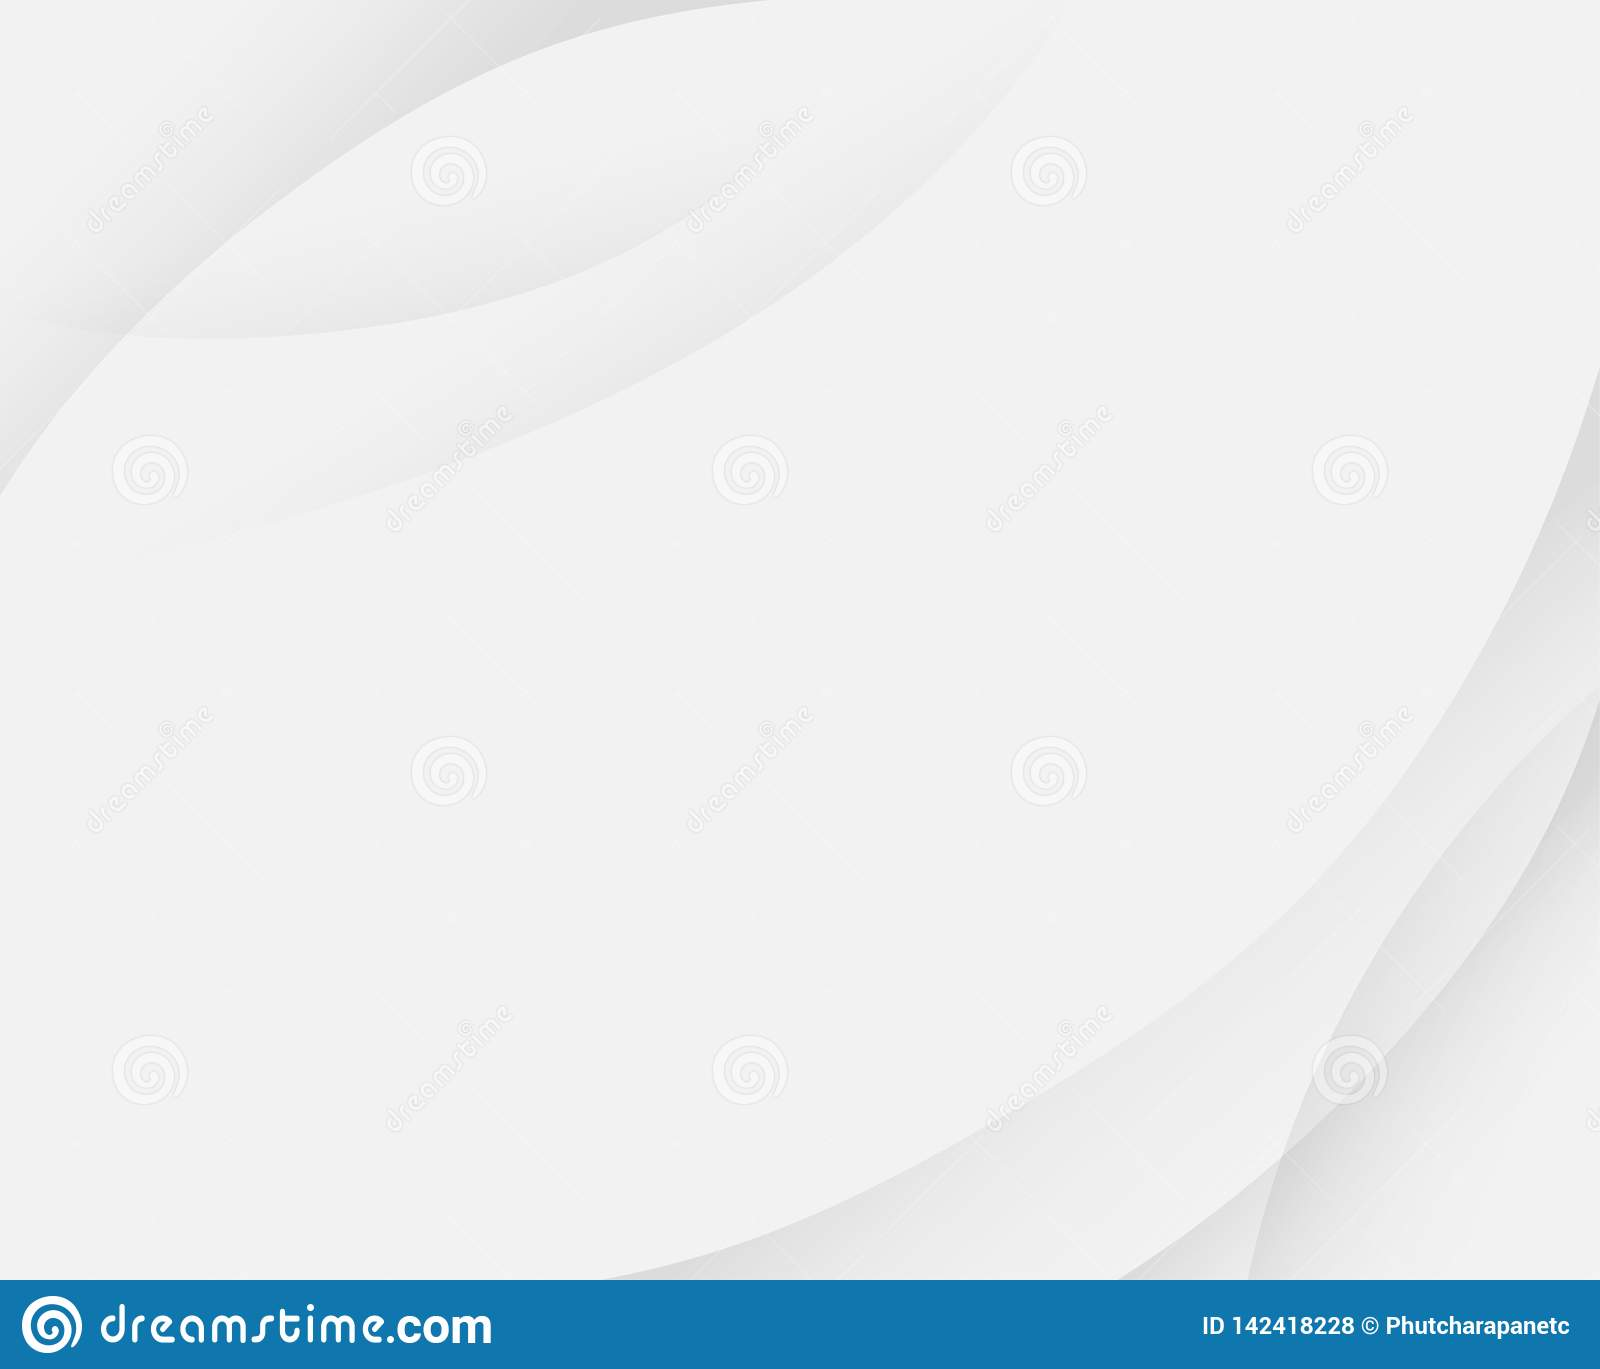 Light gray abstract background vector